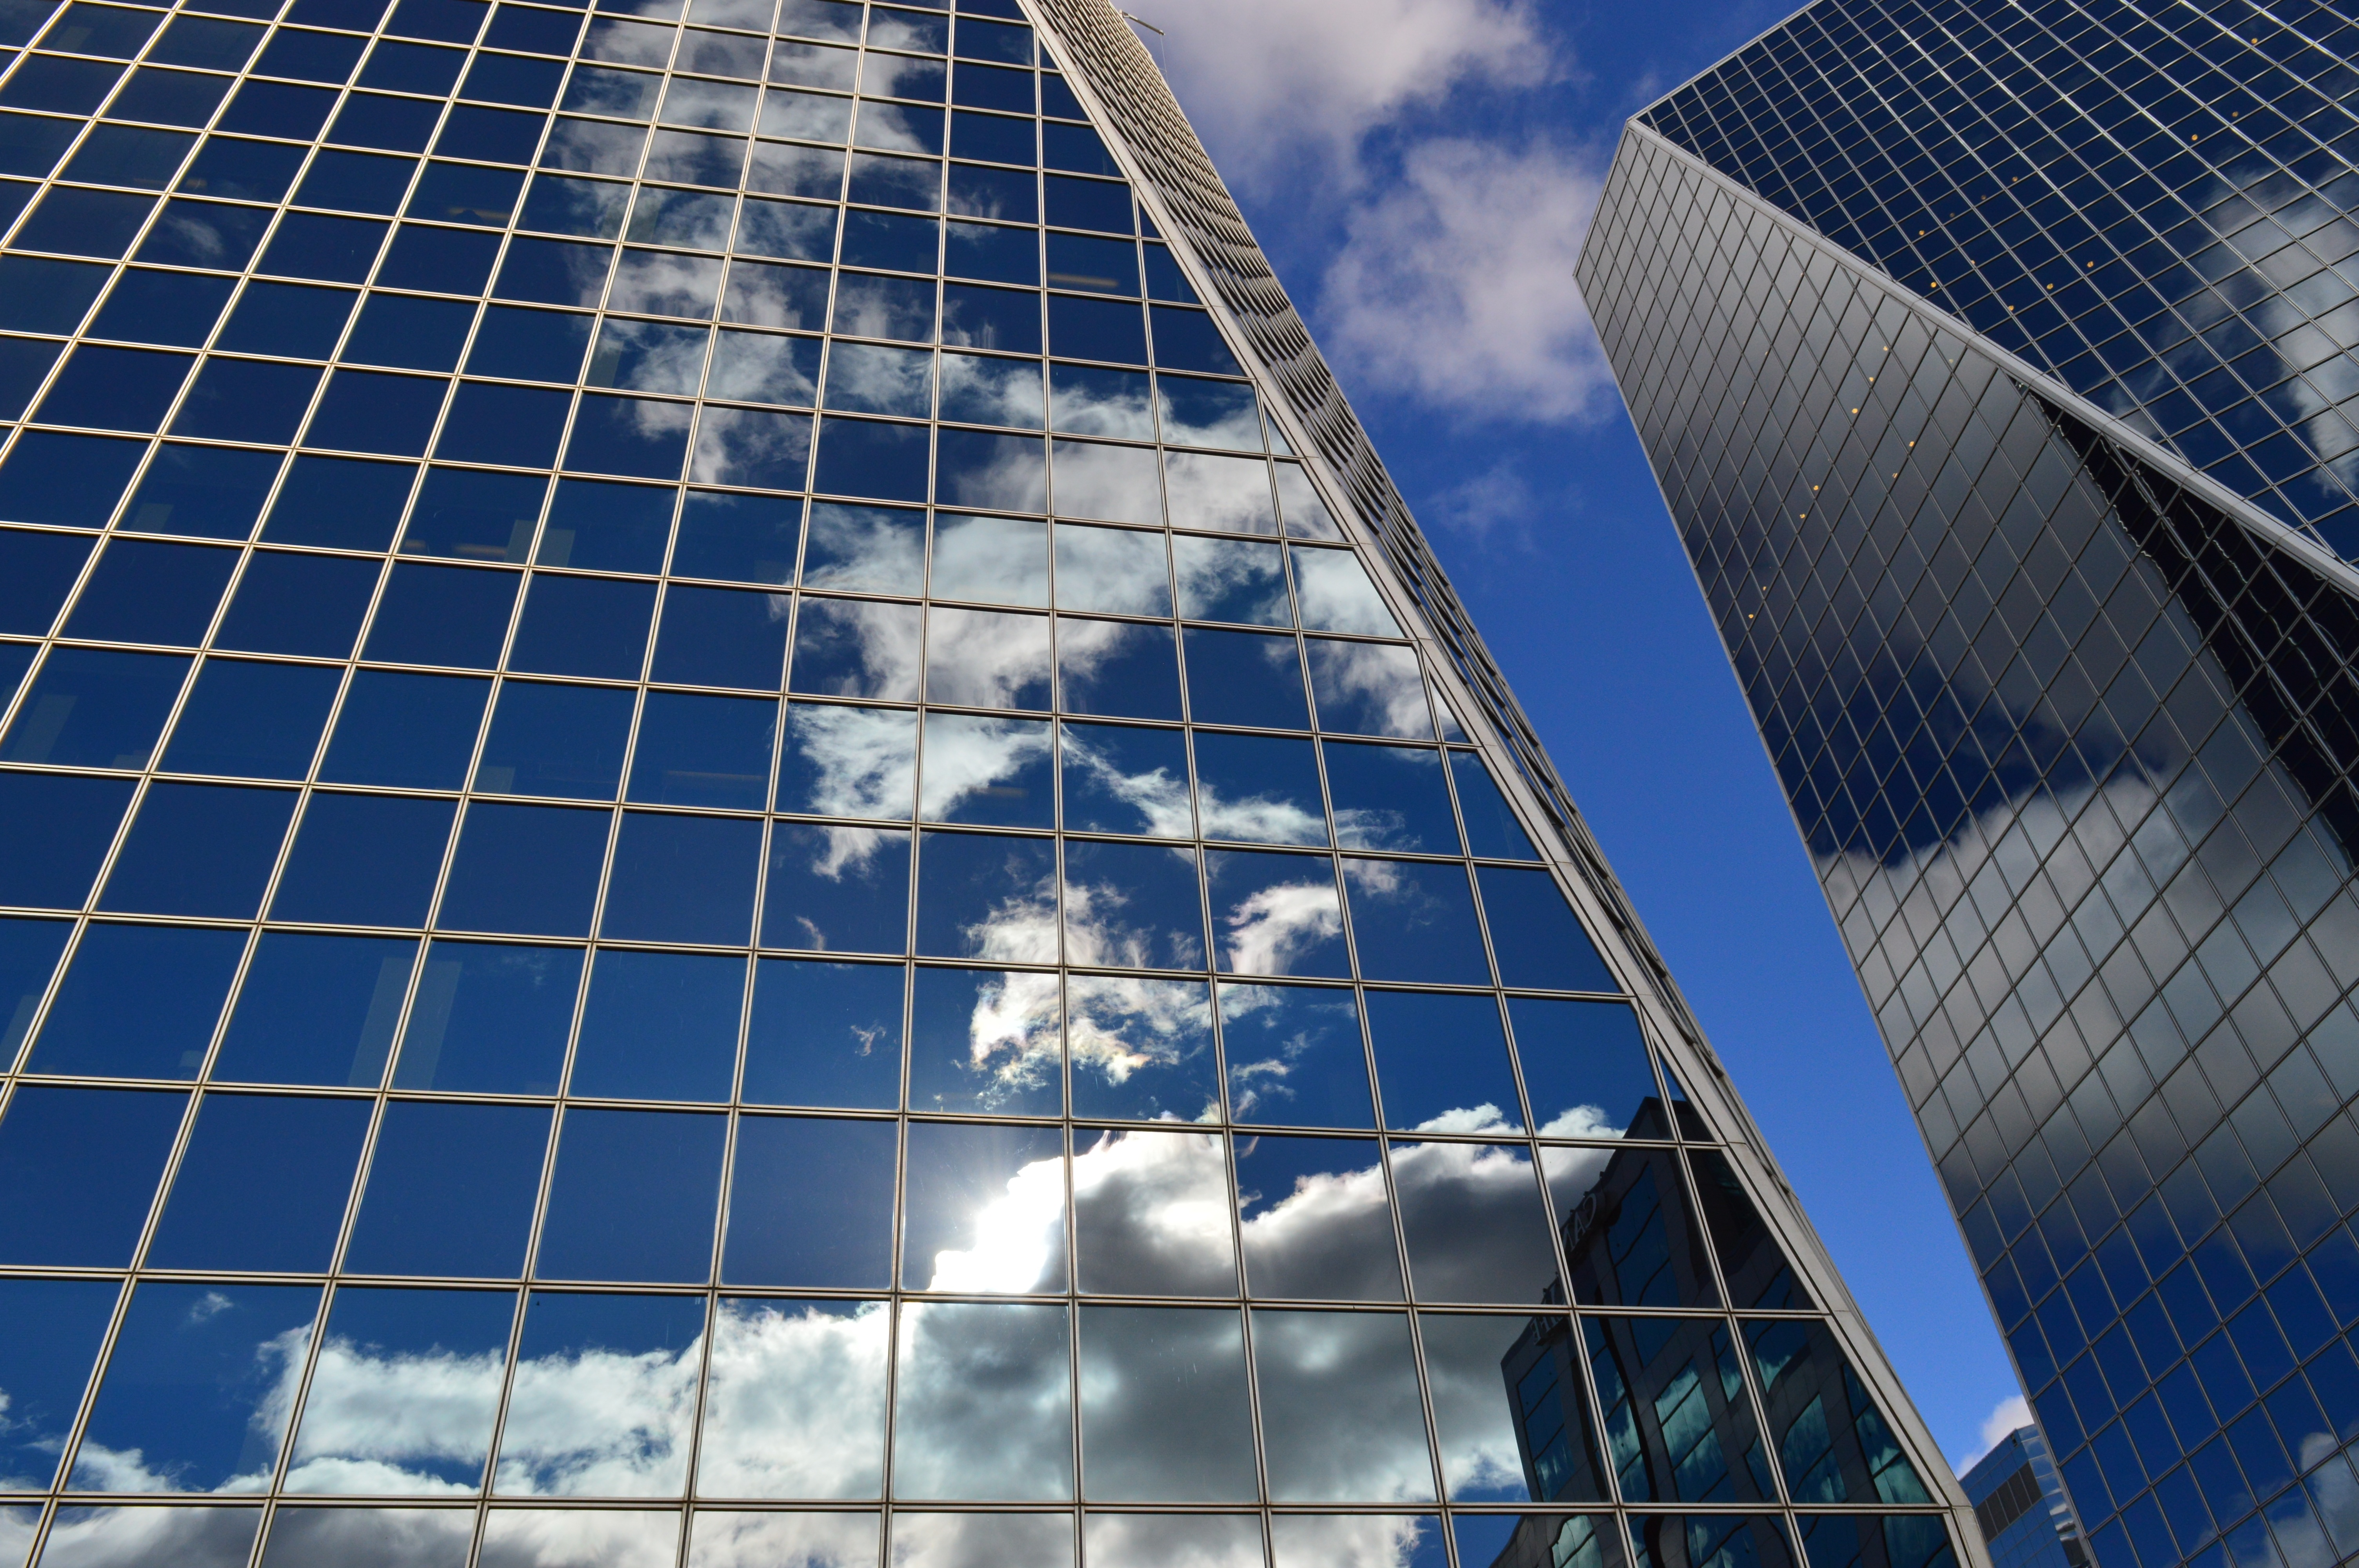 Free stock photo of city, sky, clouds, blue